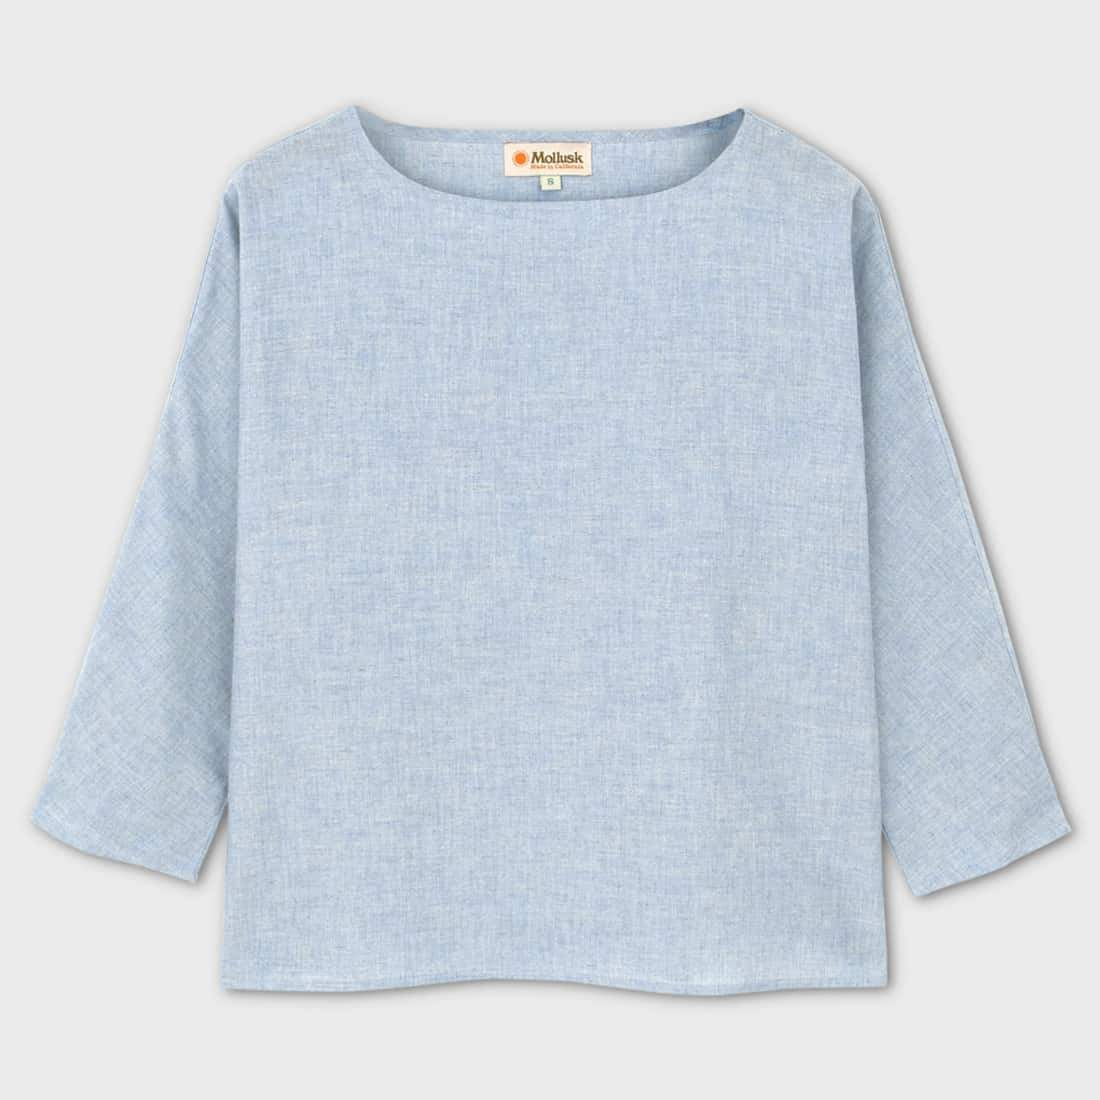 Mollusk Hirakie Shirt Sky Blue